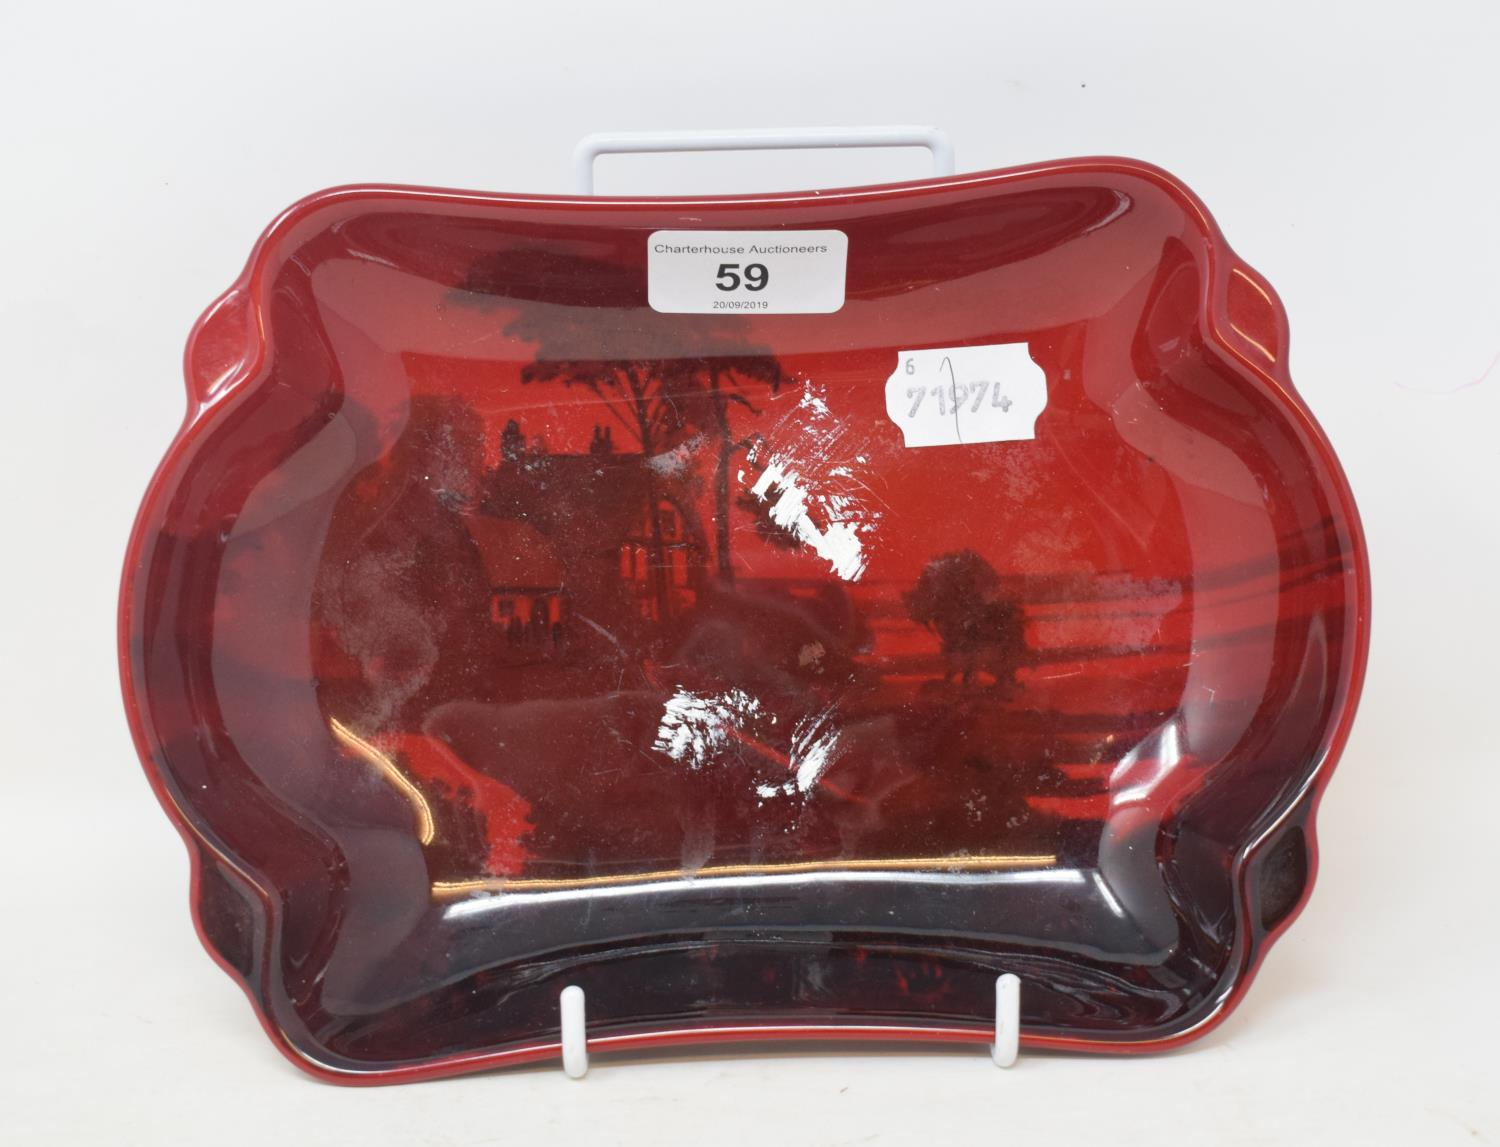 Lot 59 - A Royal Doulton Flambe dish, decorated a farmhouse scene, 8808, signed Noke to base, 23 cm wide